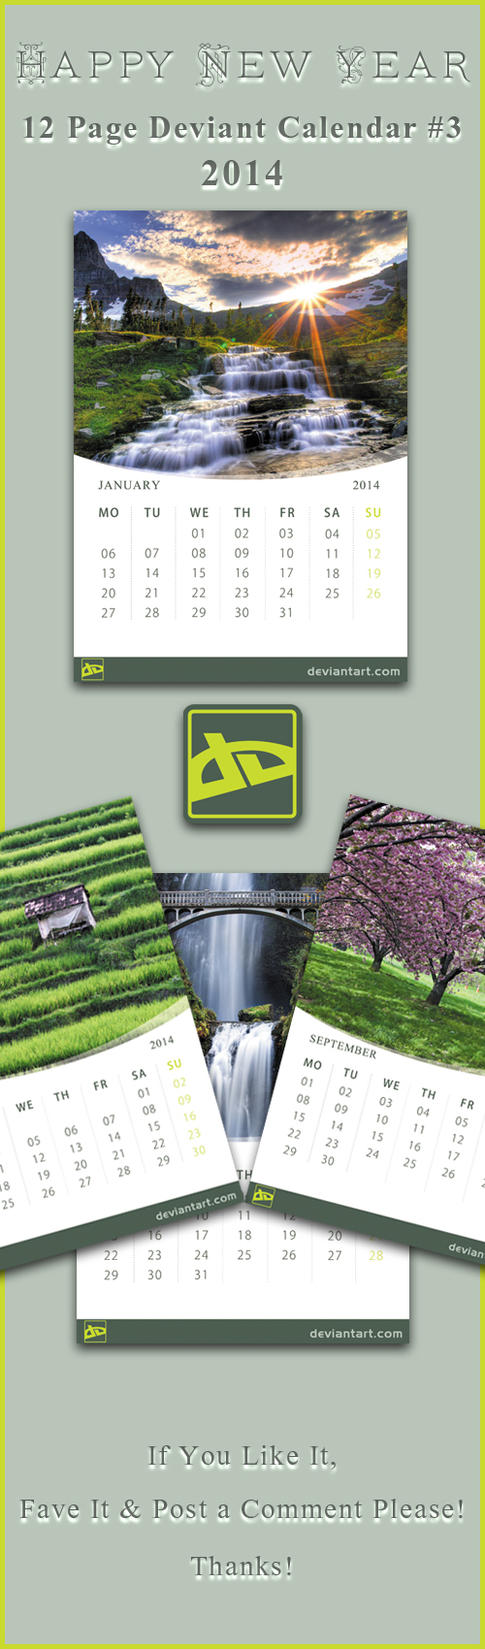 12 Page DA Calender-2014 #3 by SaimGraphics